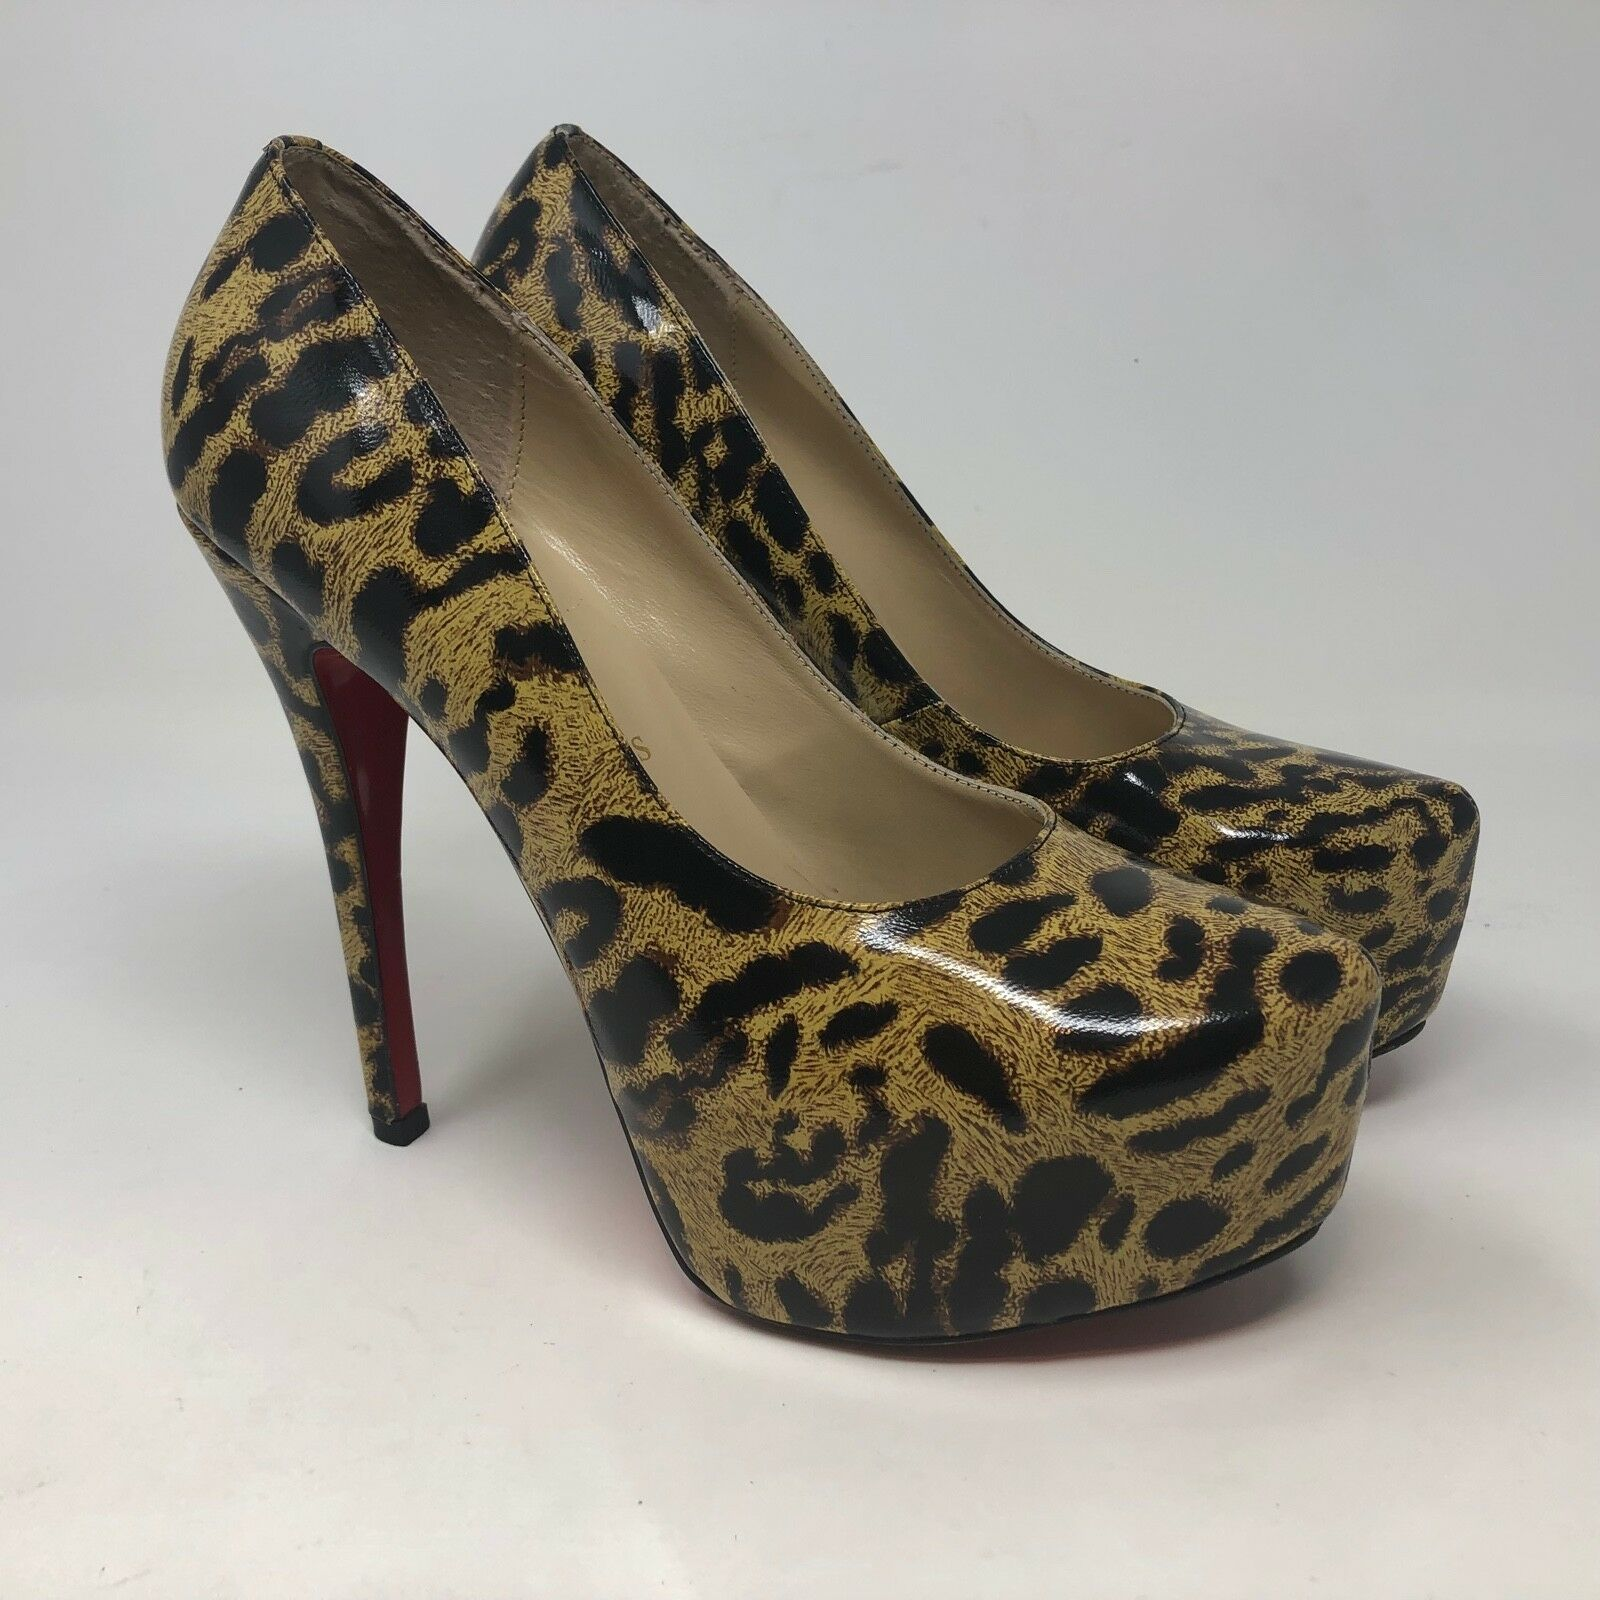 outlet online Christian Loubotin Leopard Print Print Print 5  Heels Sz 39 EU 9 US Animal Leather Red  stile classico